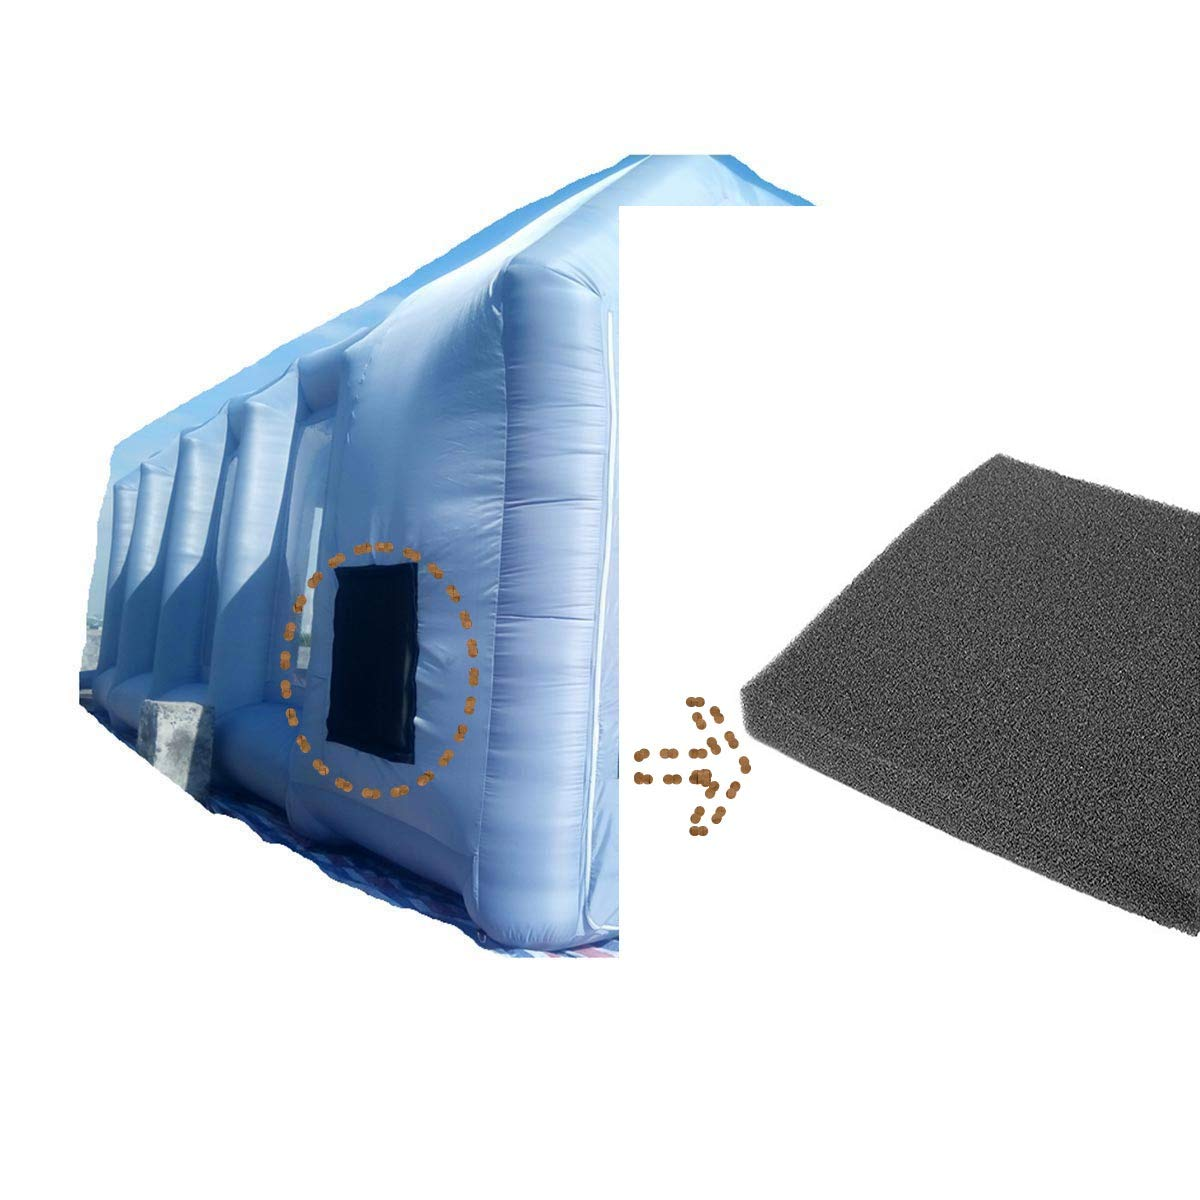 Inflatable Spray Booth with Filter System Portable Car Paint Booth for Car Parking Tent Workstation (Blue, 65655CM)